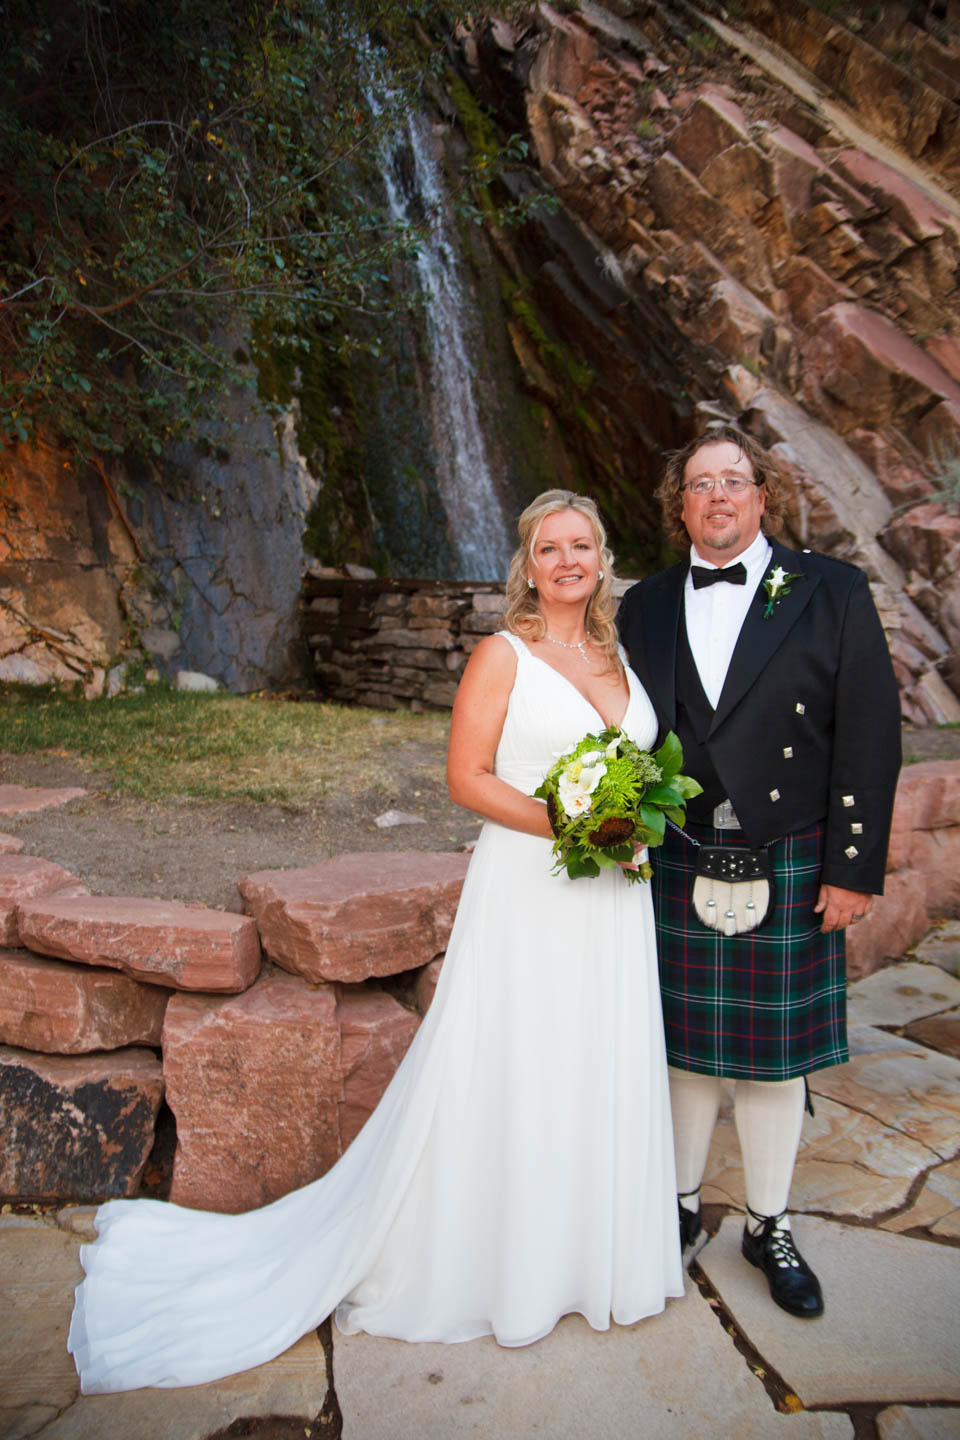 Formal Wedding portraits by the water fall